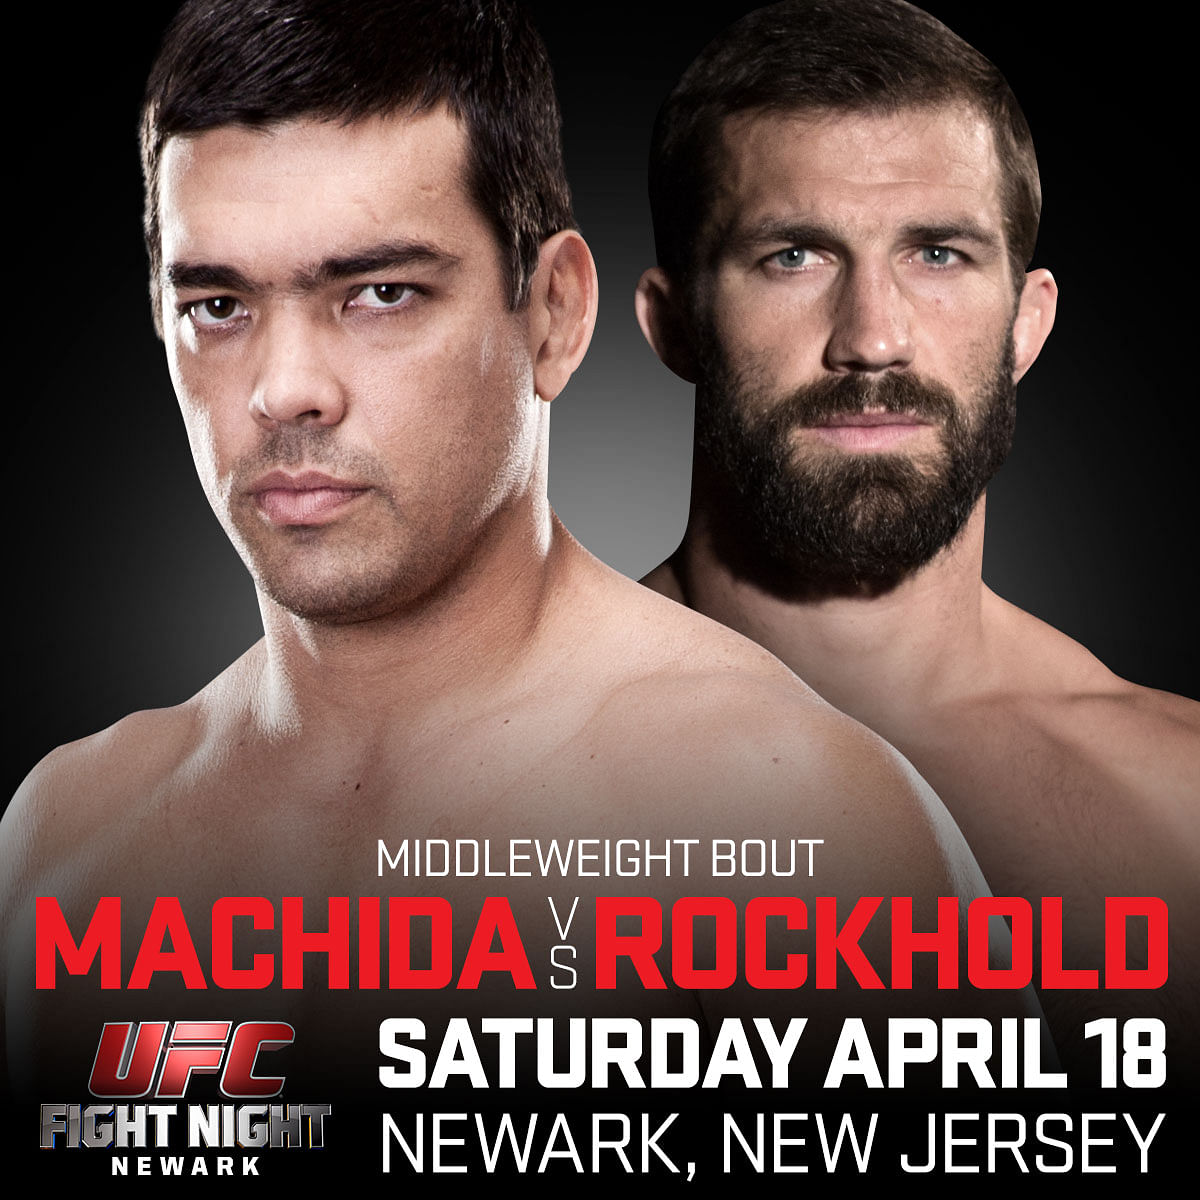 UFC on Fox: Machida vs. Rockhold - Preview and Predictions